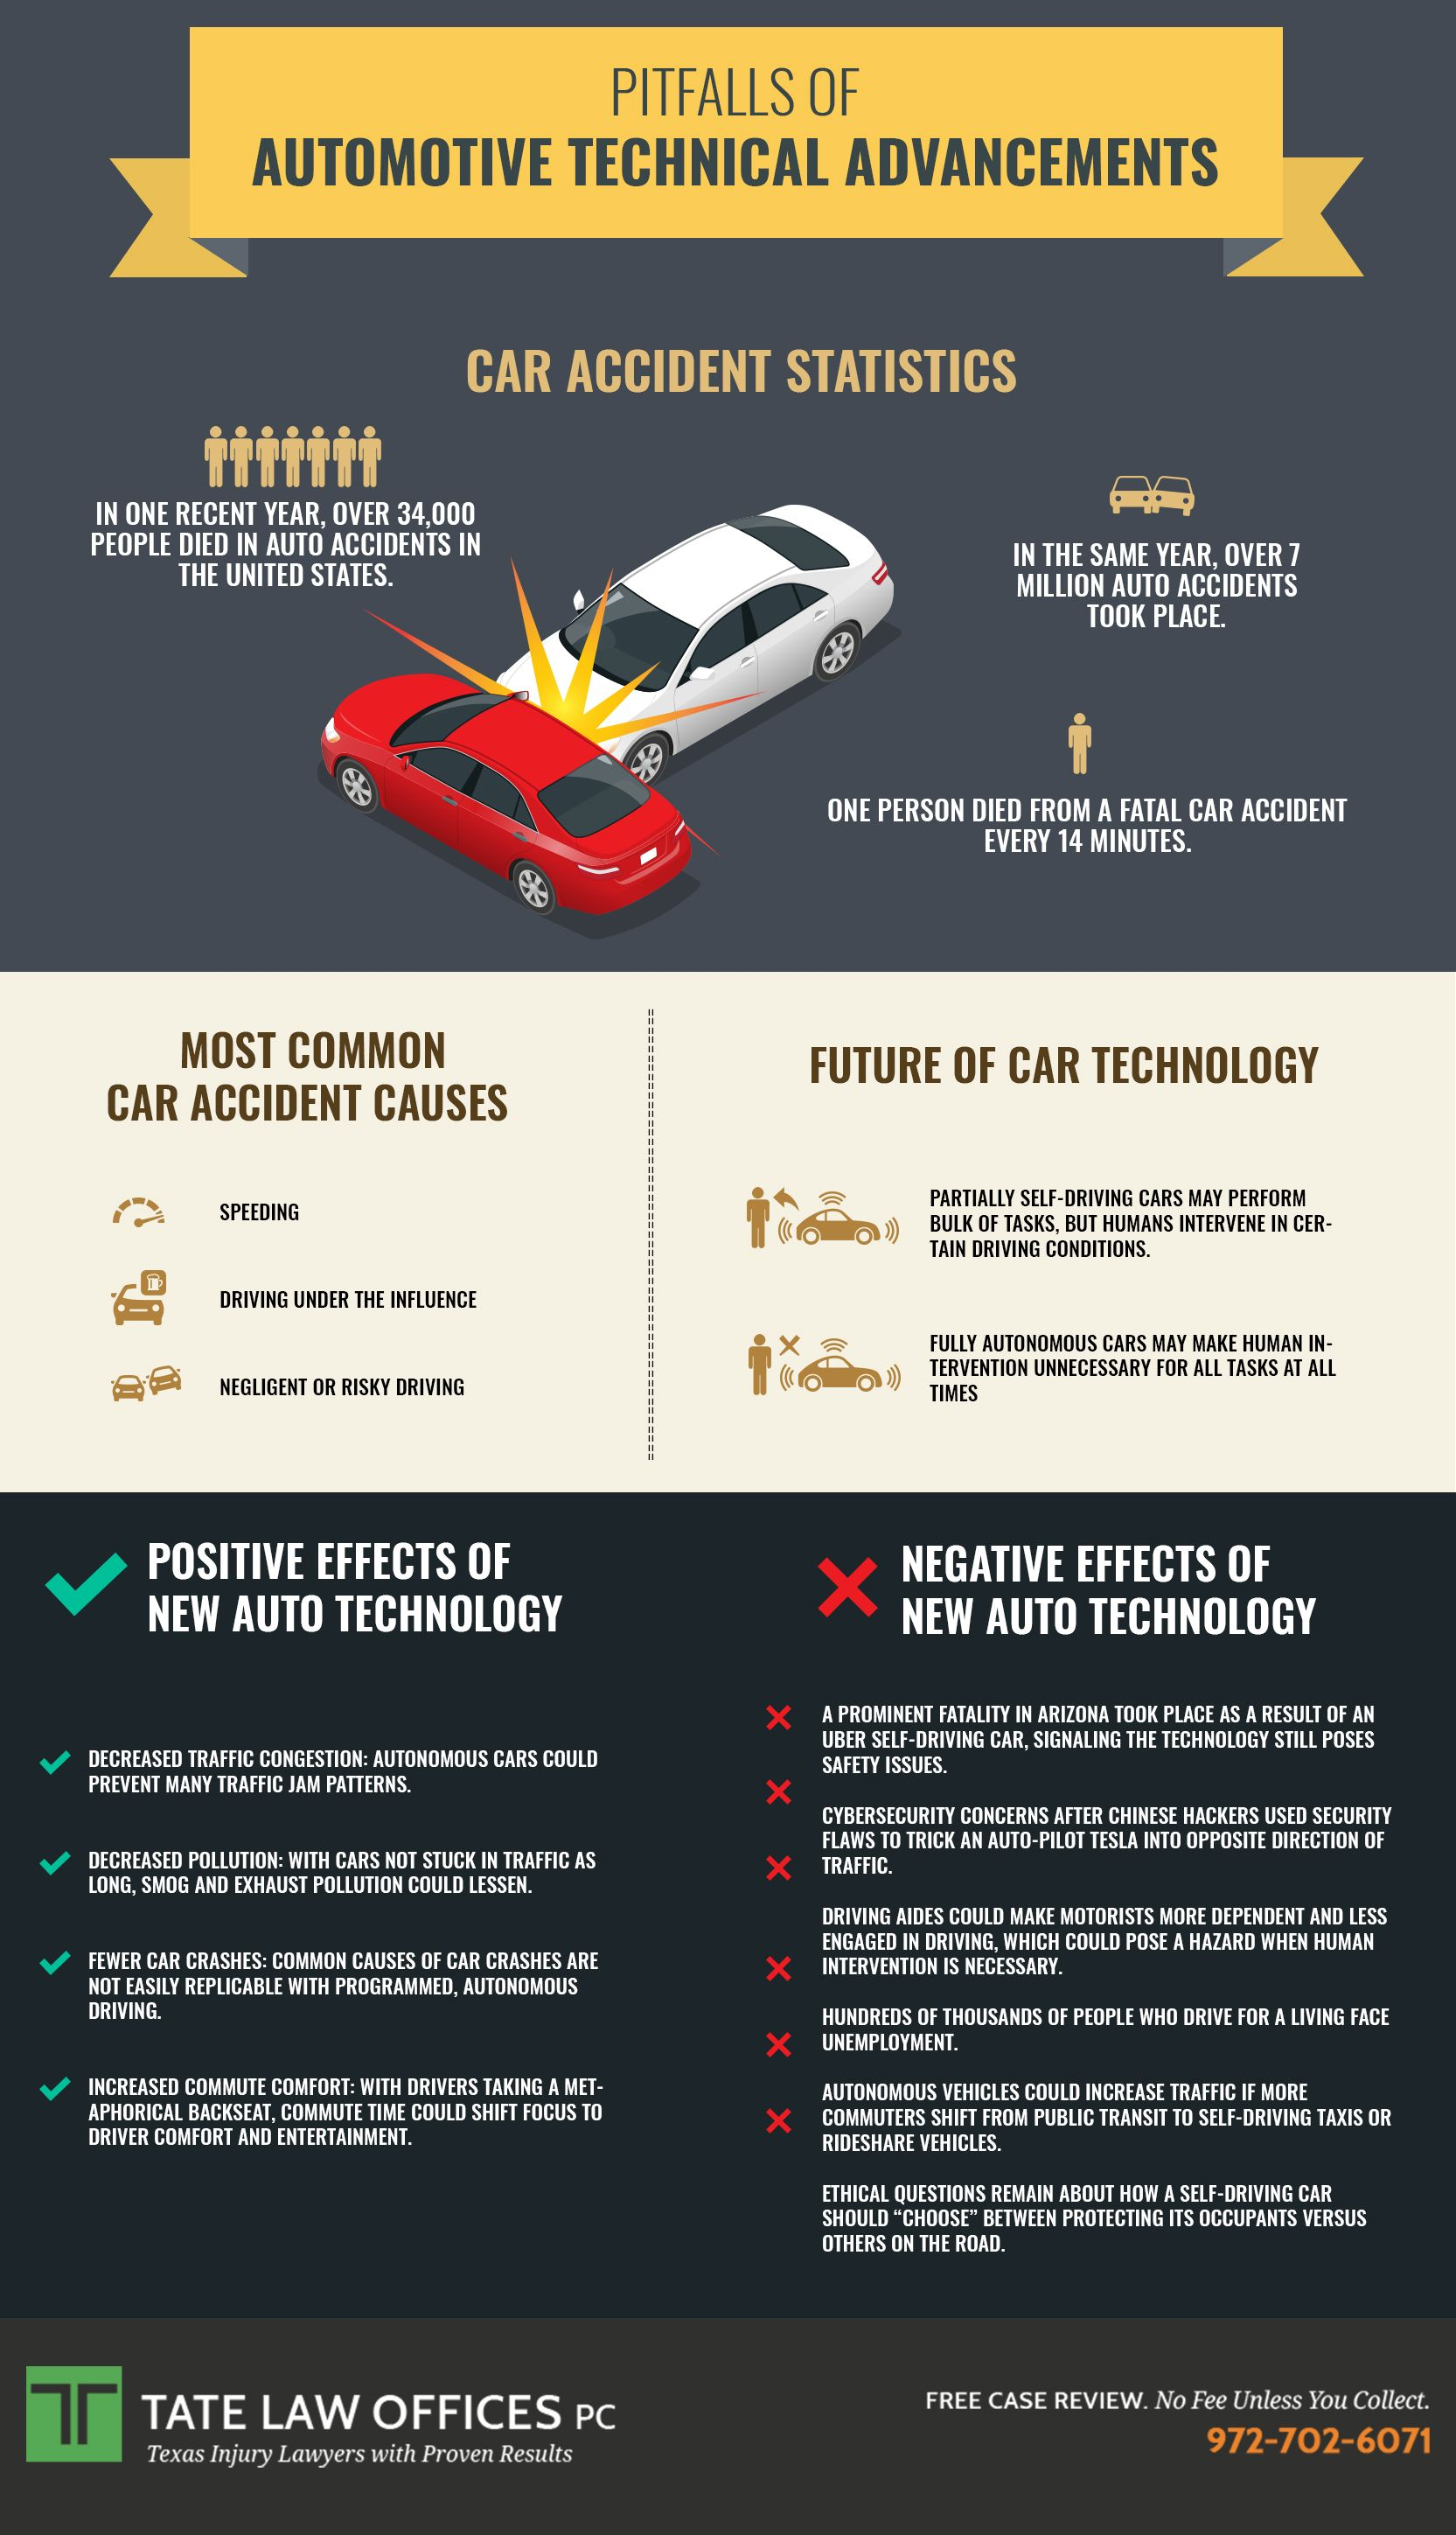 Pin By Gracemiddleton On Driving Infographic Car Accident Lawyer Driving Car Accident Injuries